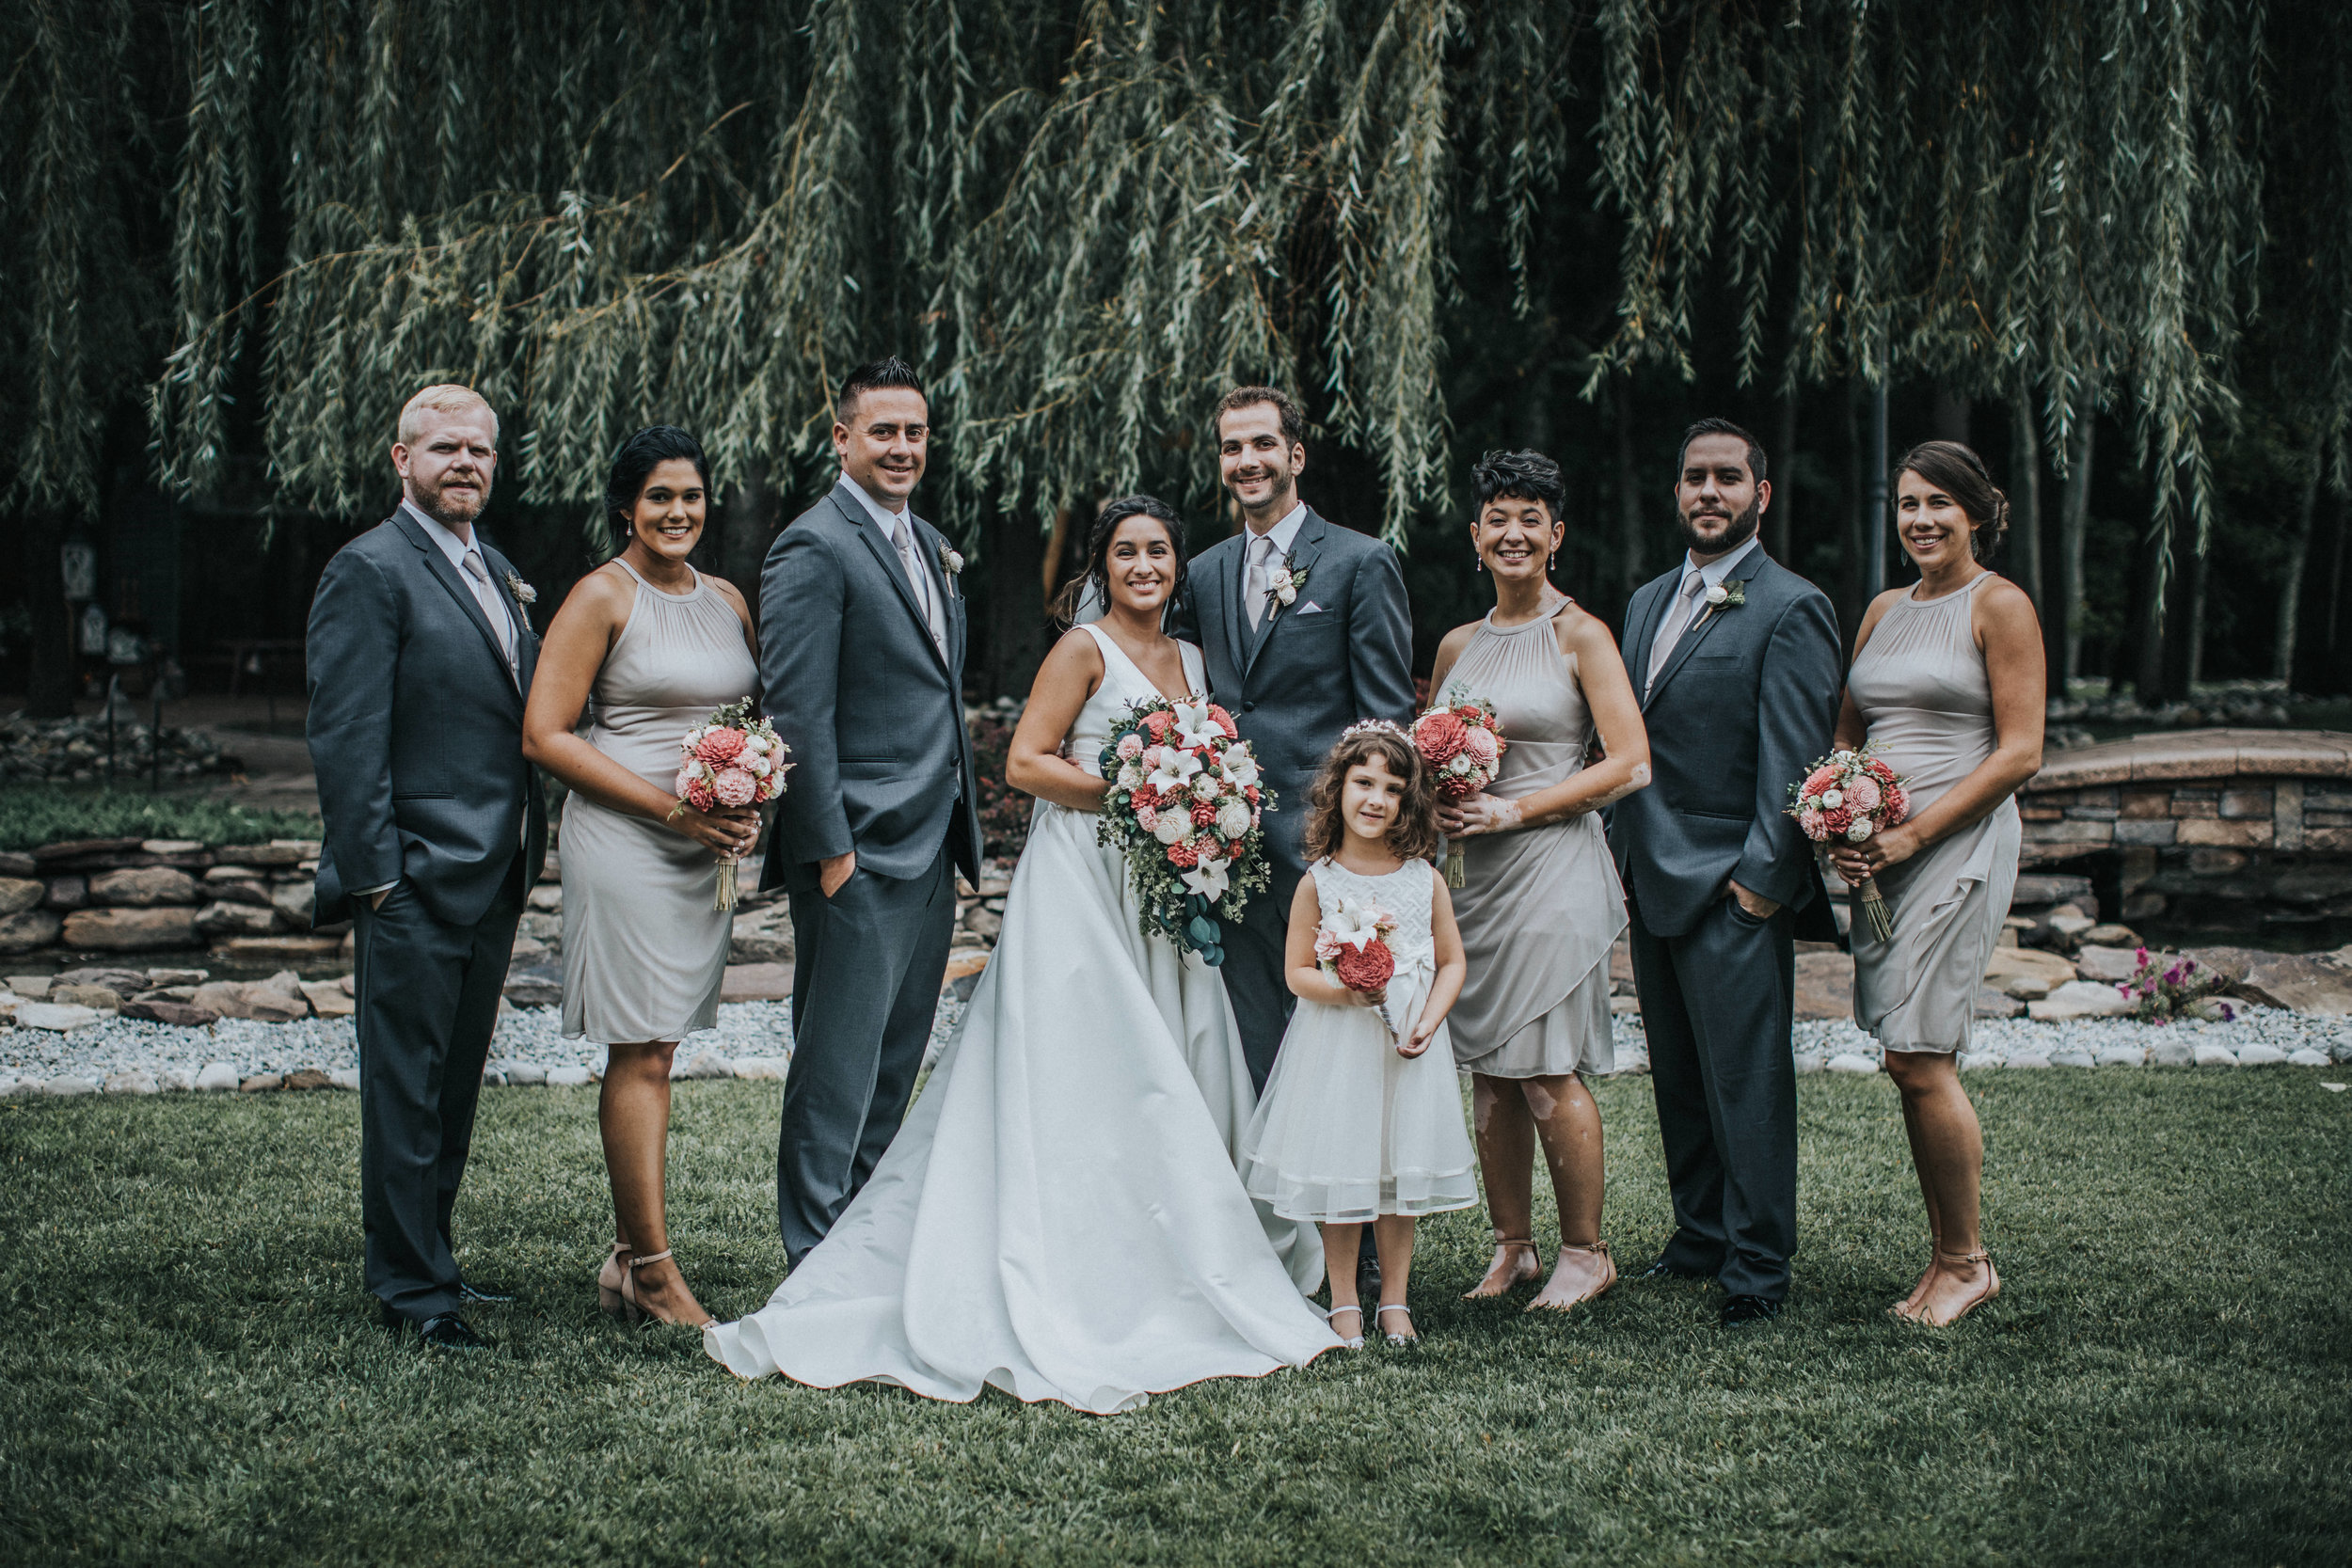 New-Jersey-Wedding-Photographer-Jenna-Lynn-Photography-Wedding-Brigalias-Ashley&Sal-BridalParty-3.jpg